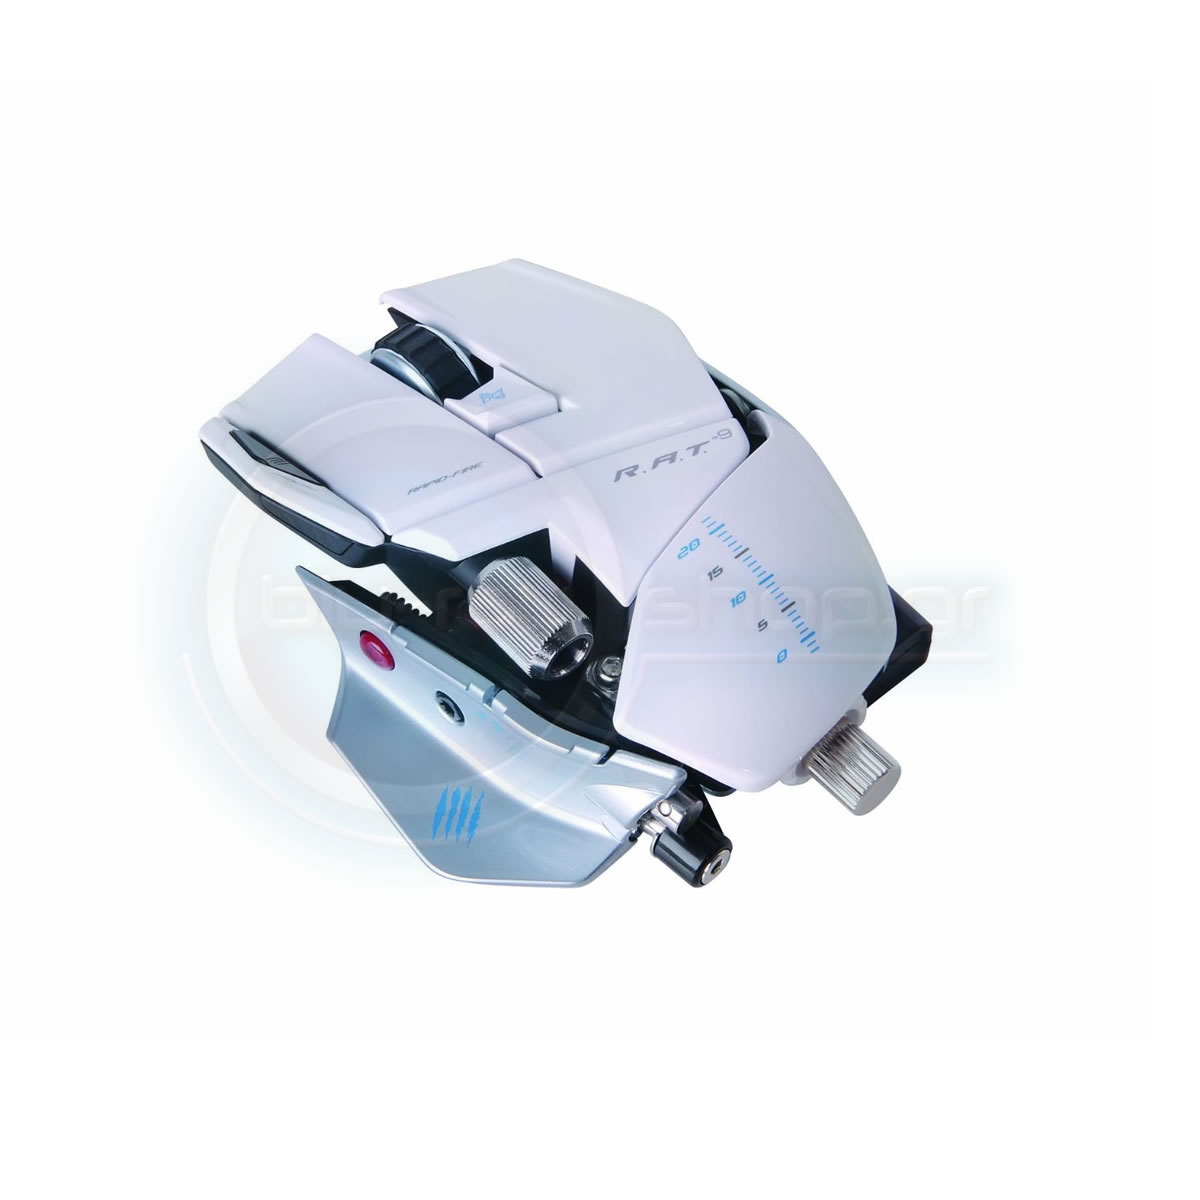 MAD CATZ CYBORG RAT 9 WIRELESS GAMING MOUSE - WHITE (PC)